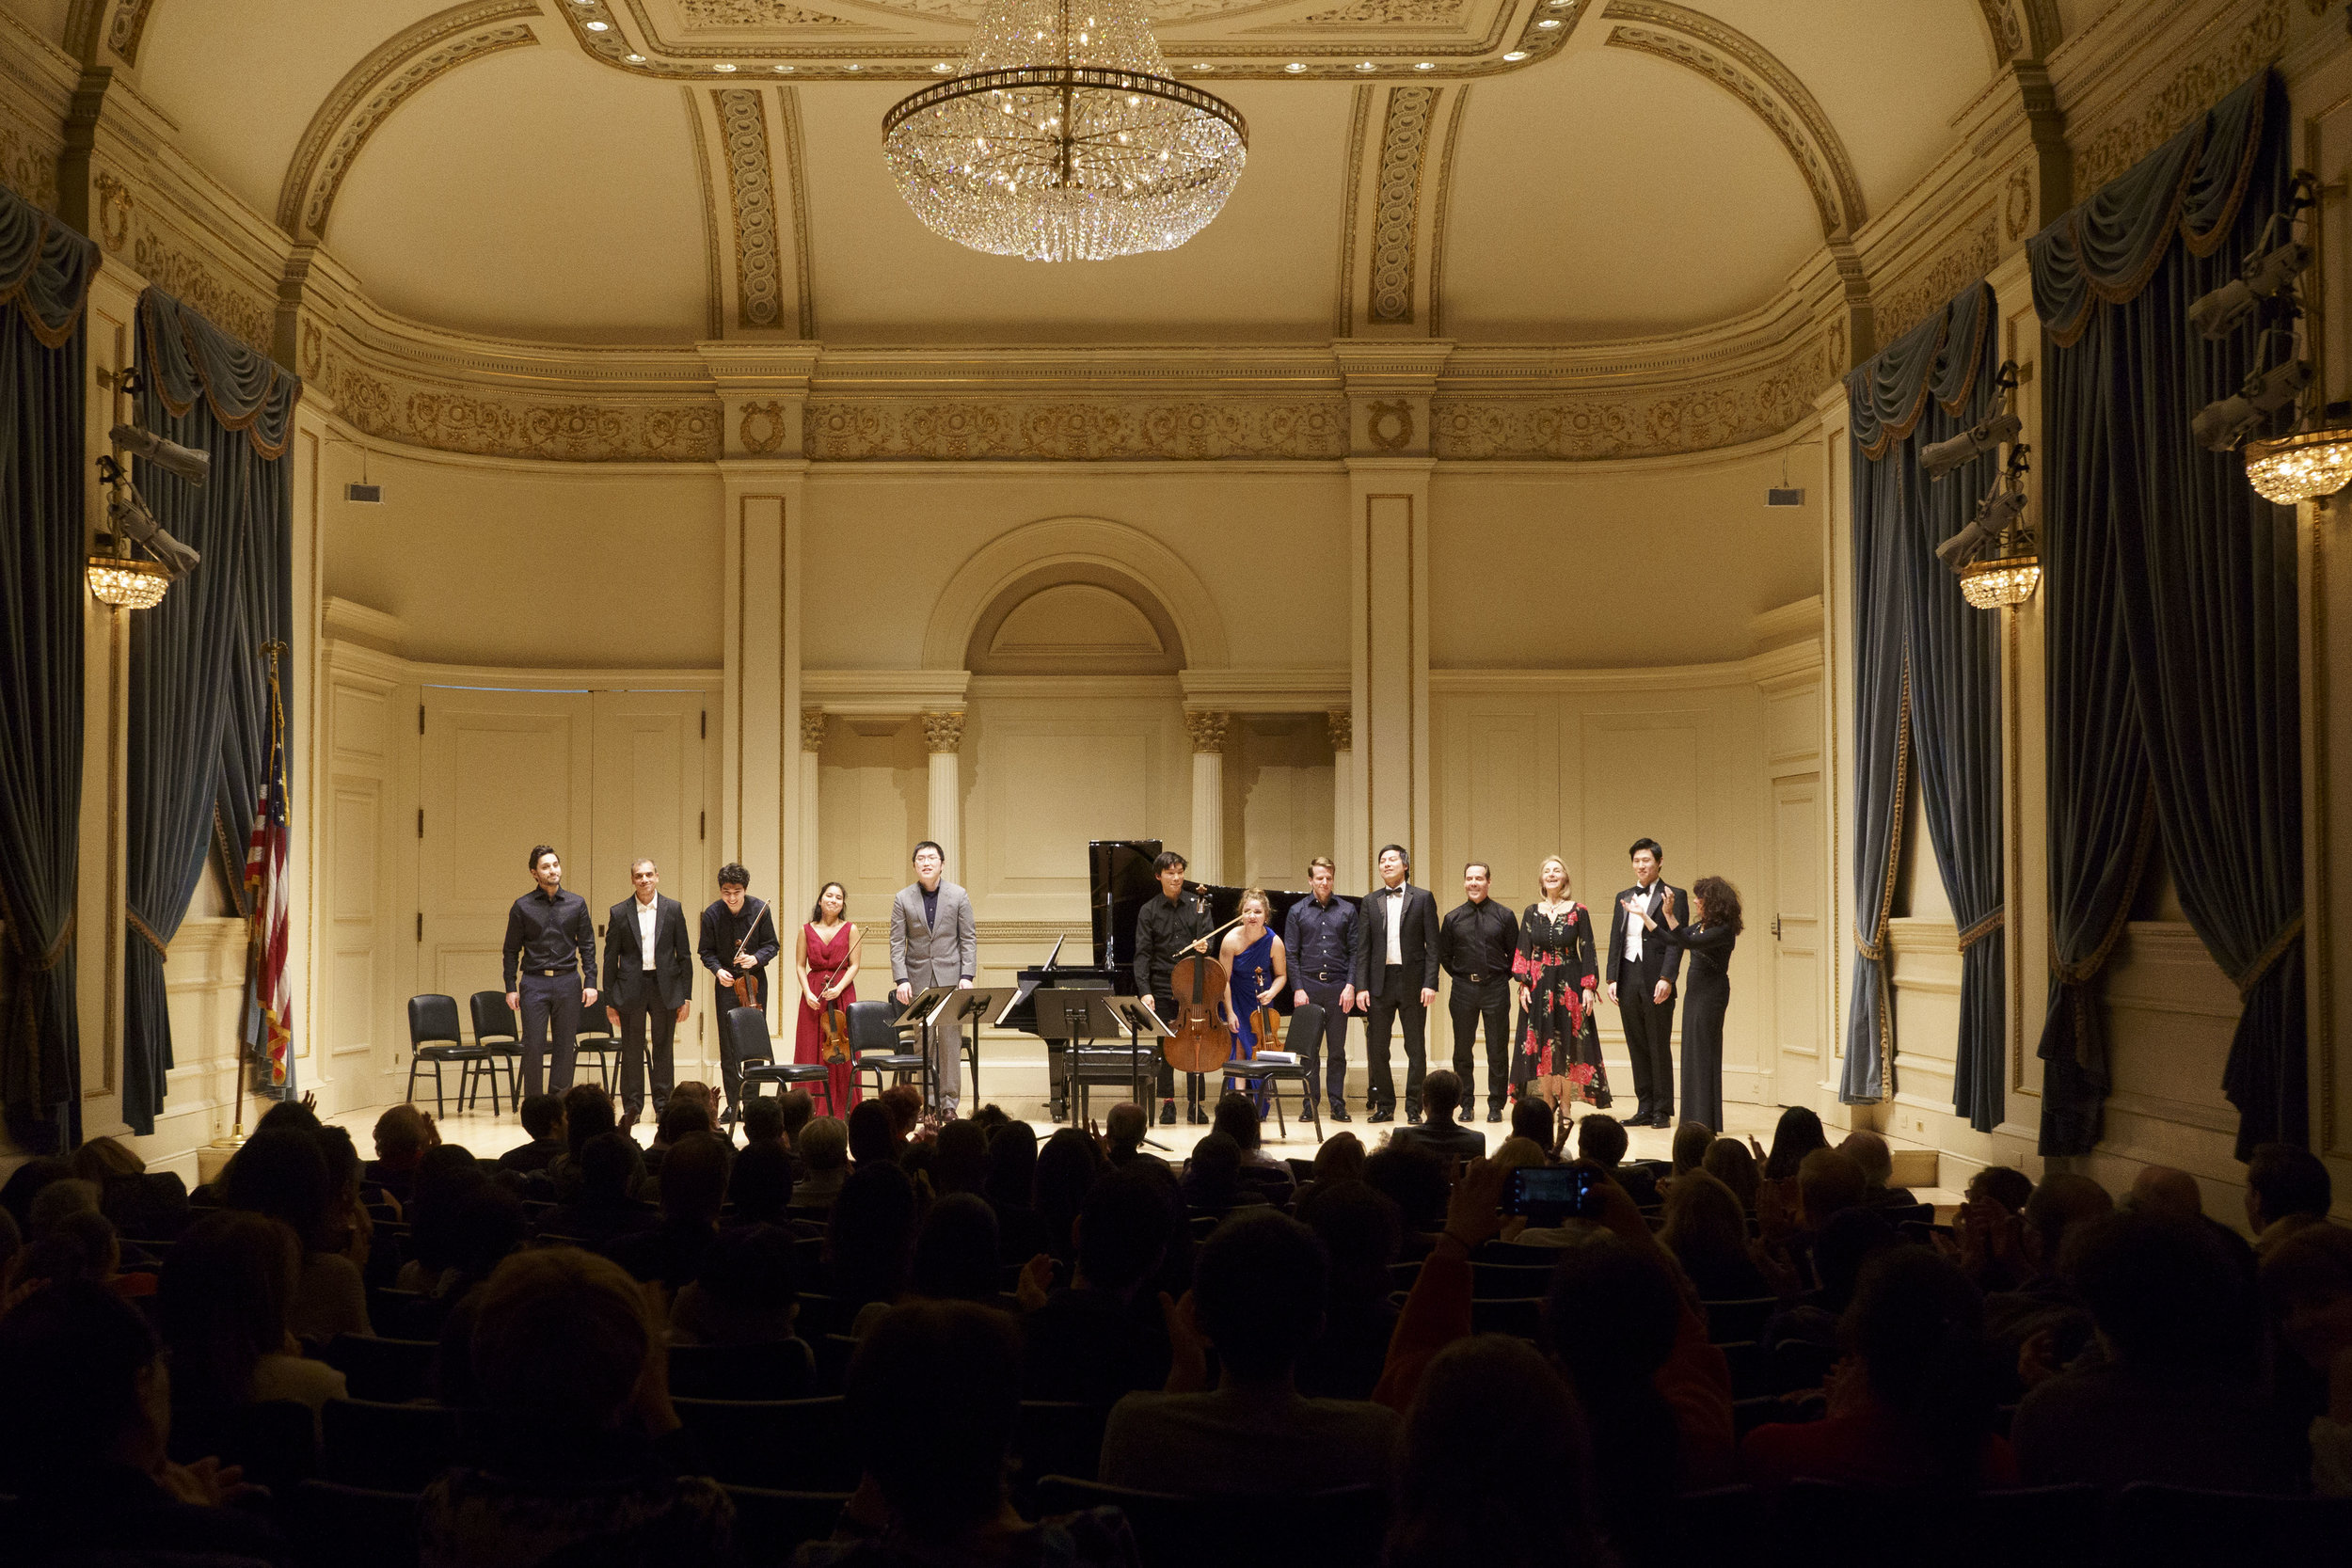 4 VIP tickets to our Annual Gala Benefit concert in Weill Recital Hall at Carnegie Hall  Value of $500 // Starting Bid: $250  March 7, 2020 8:00 pm